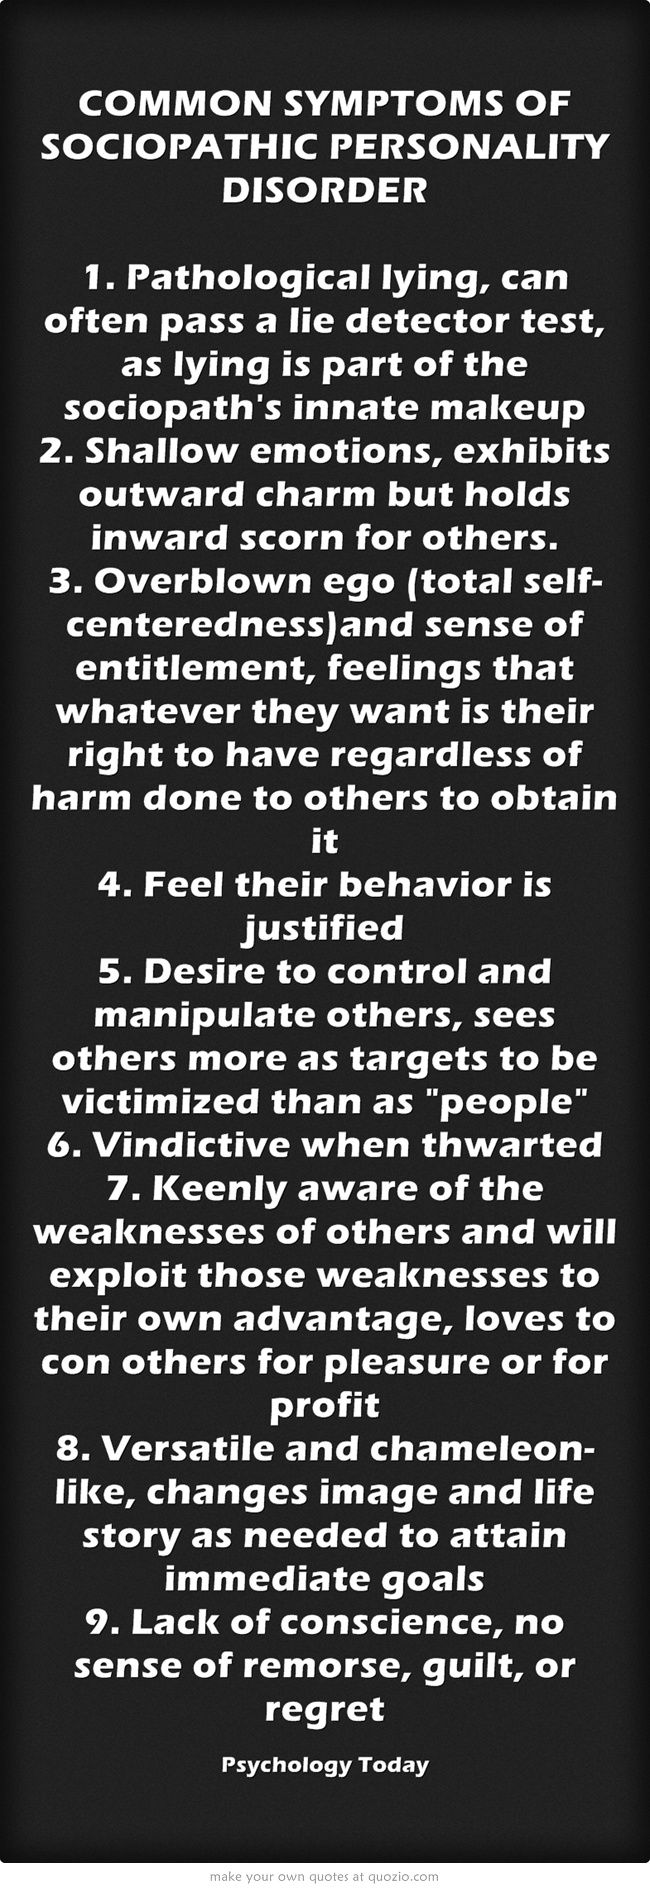 narcissistic personality disorder relationships - http://www.selfhelpgarden.com/the-ultimate-truth-about-narcissistic-personality-disorder-relationships